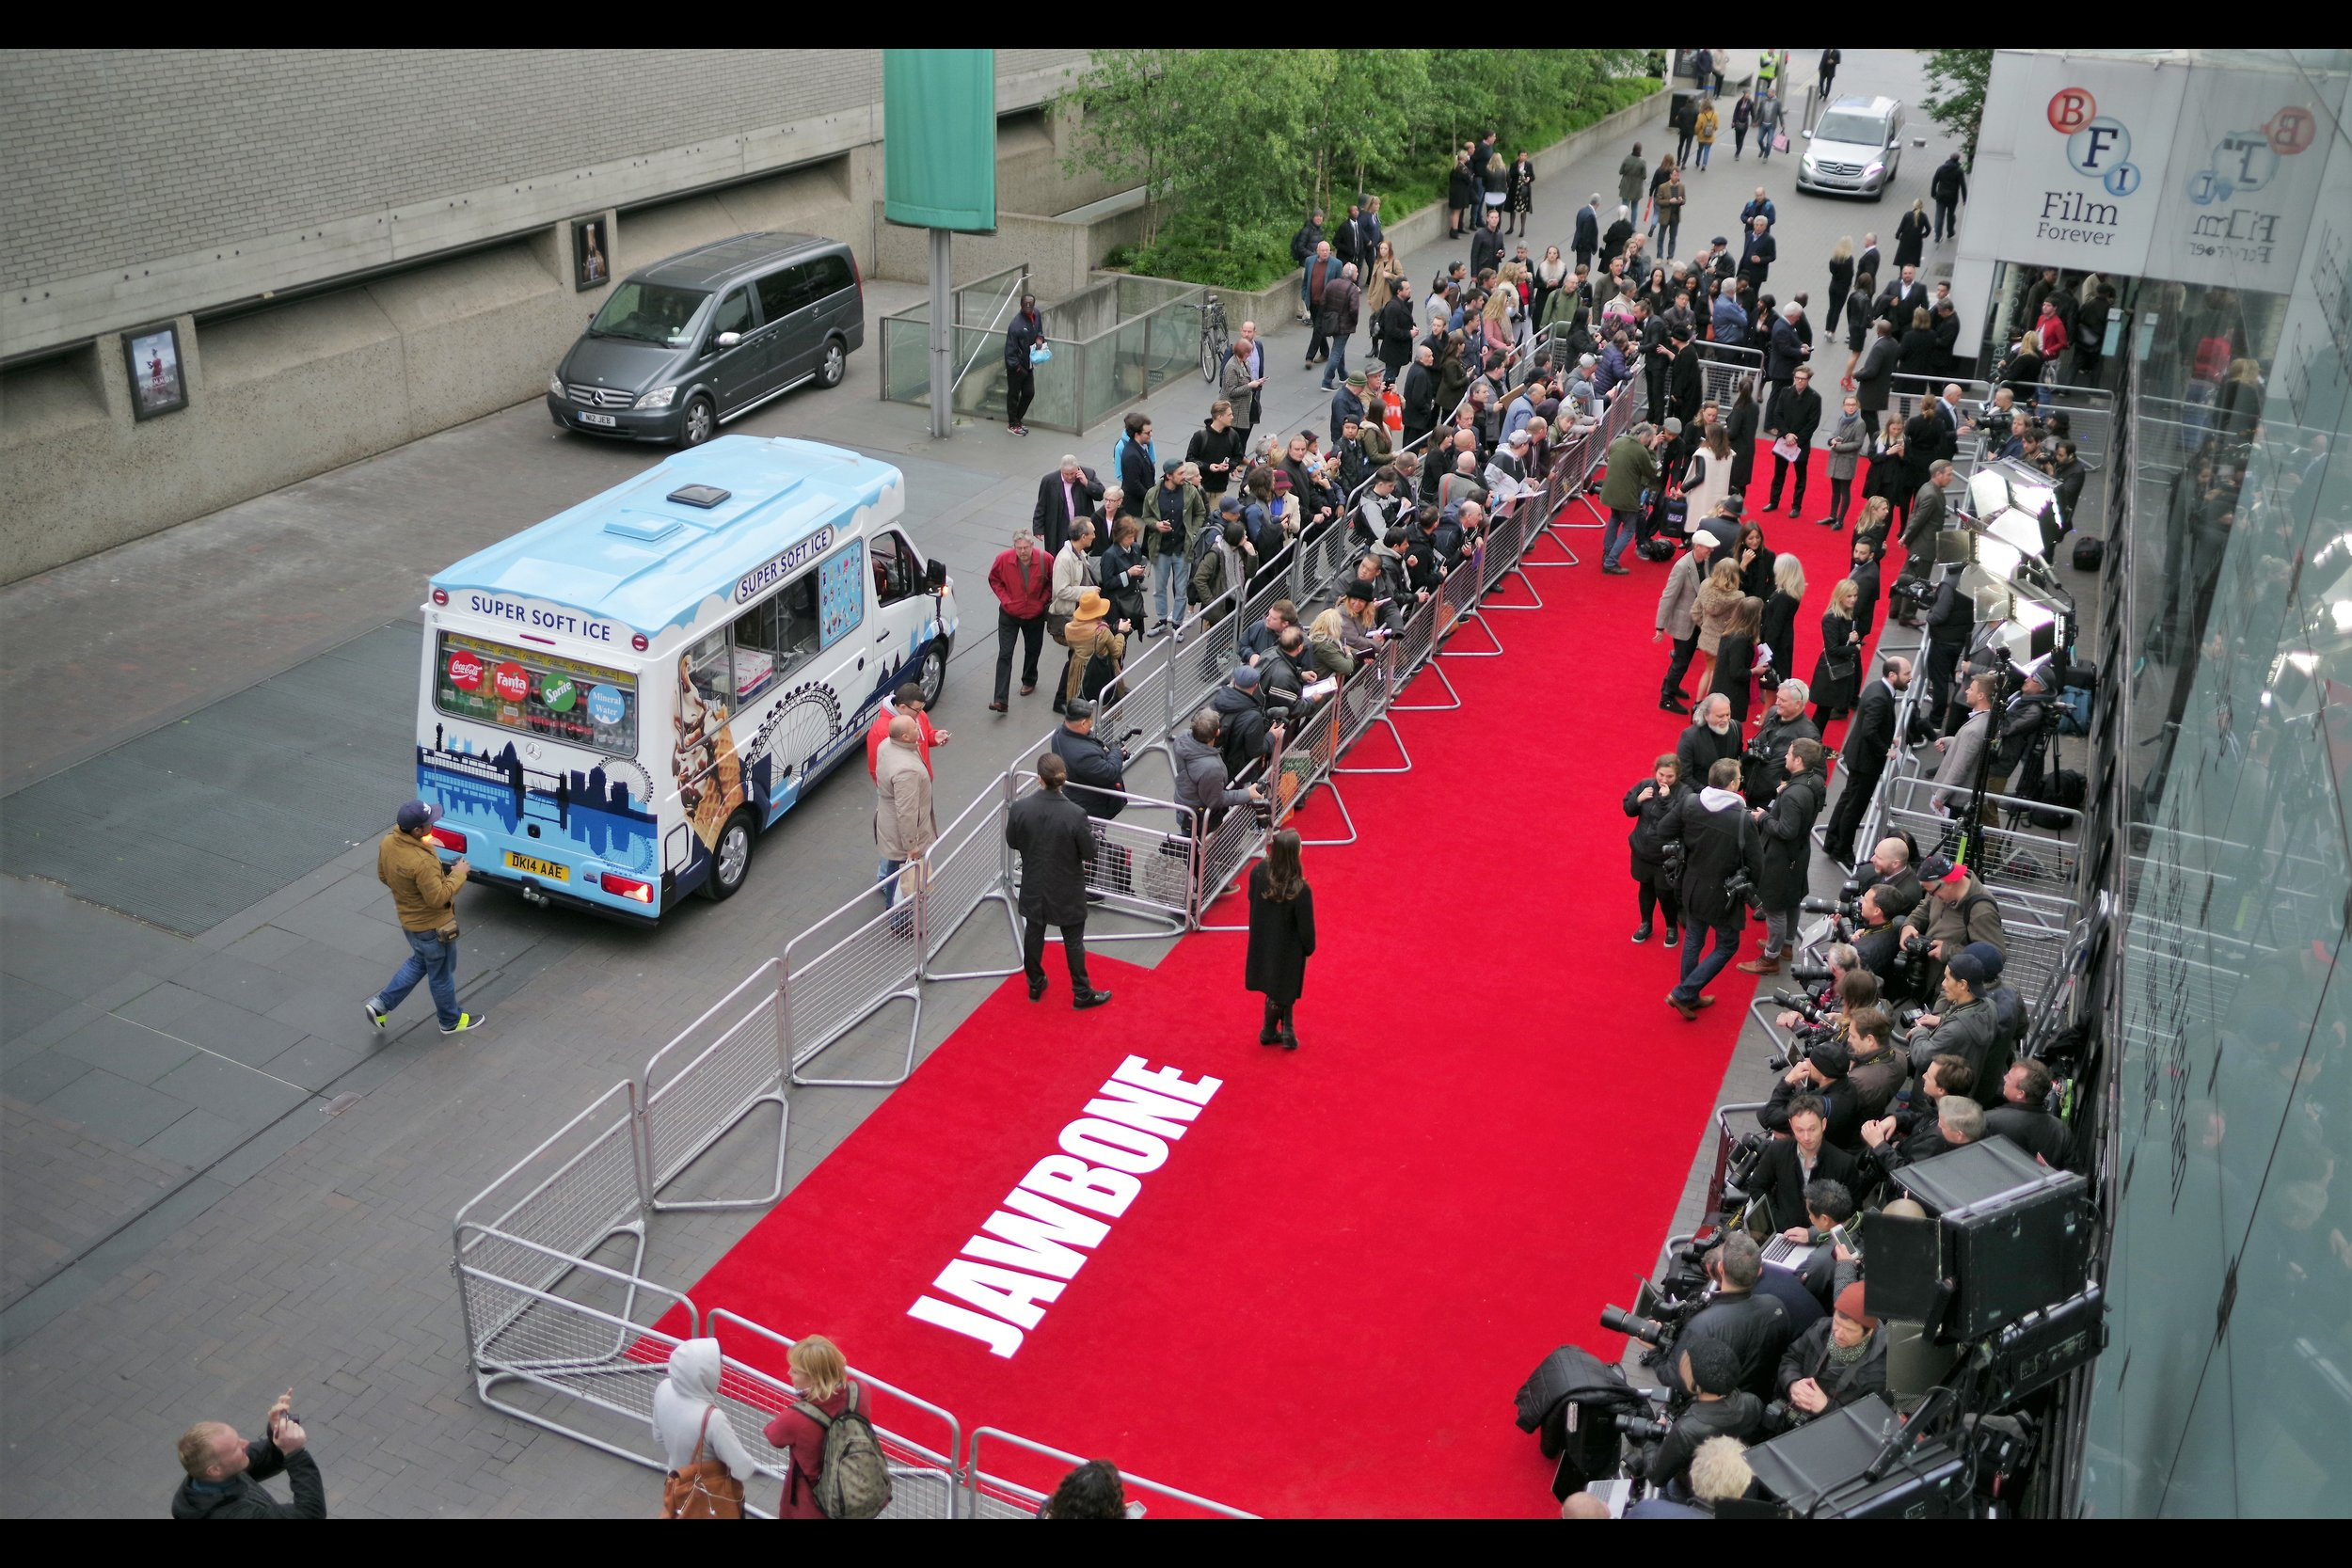 OMG and then an ice-cream van showed up at a premiere, and ordinarily I'd just make that up but here's a photo.